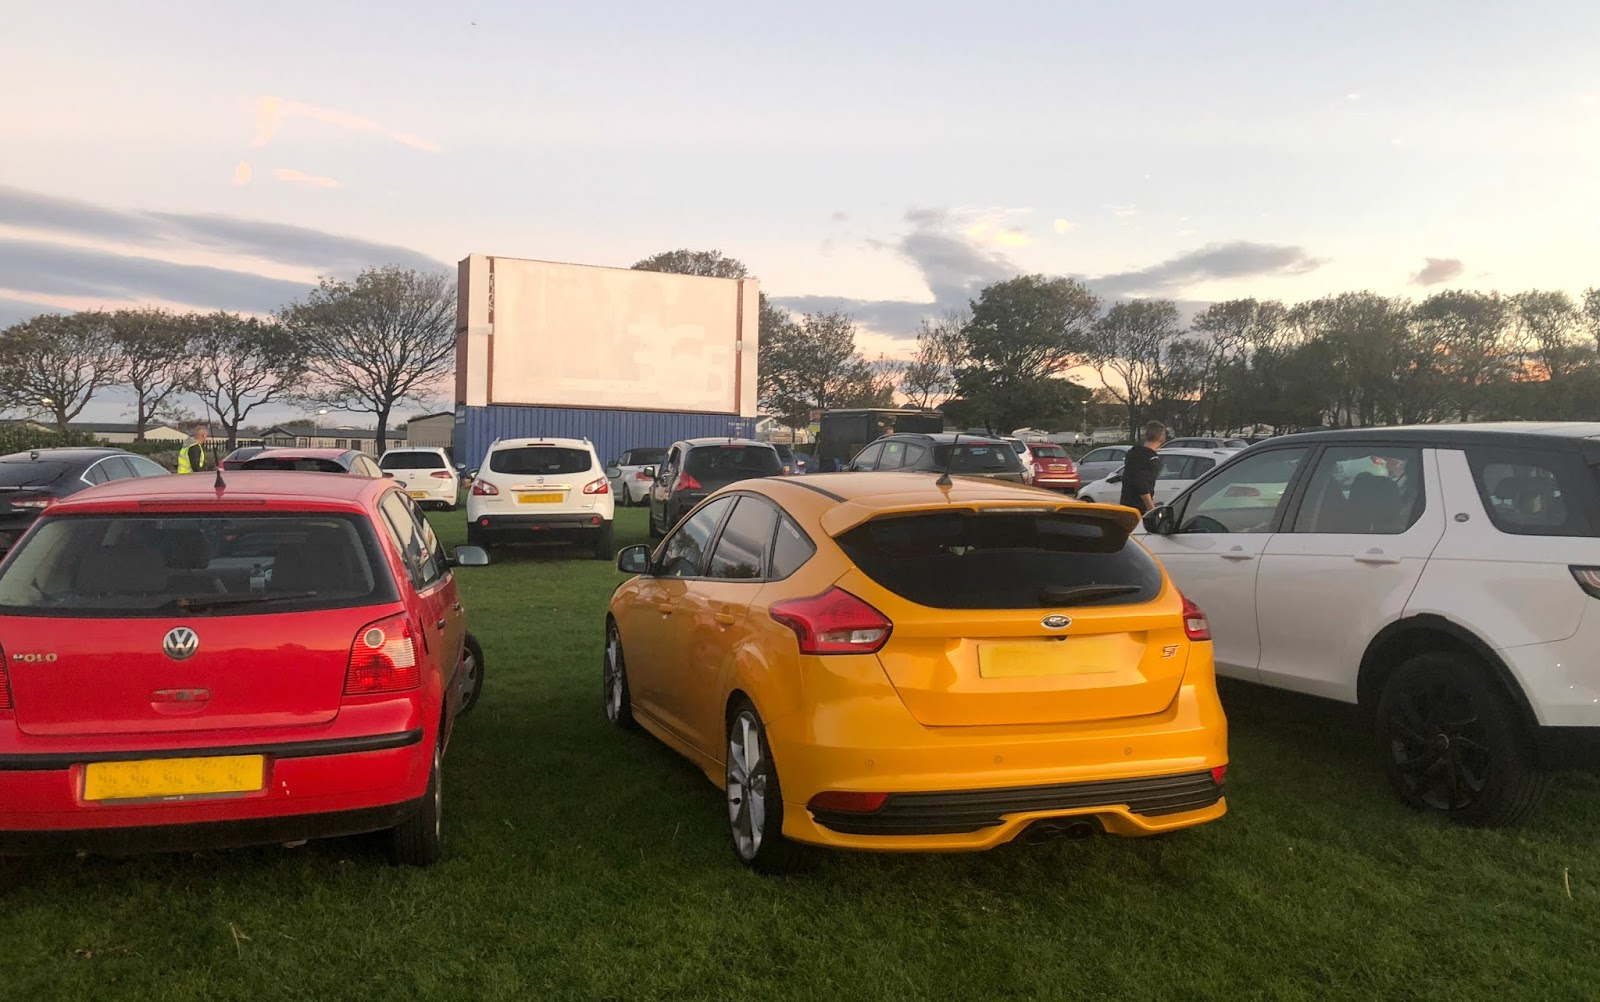 Drive in Cinema at South Shields